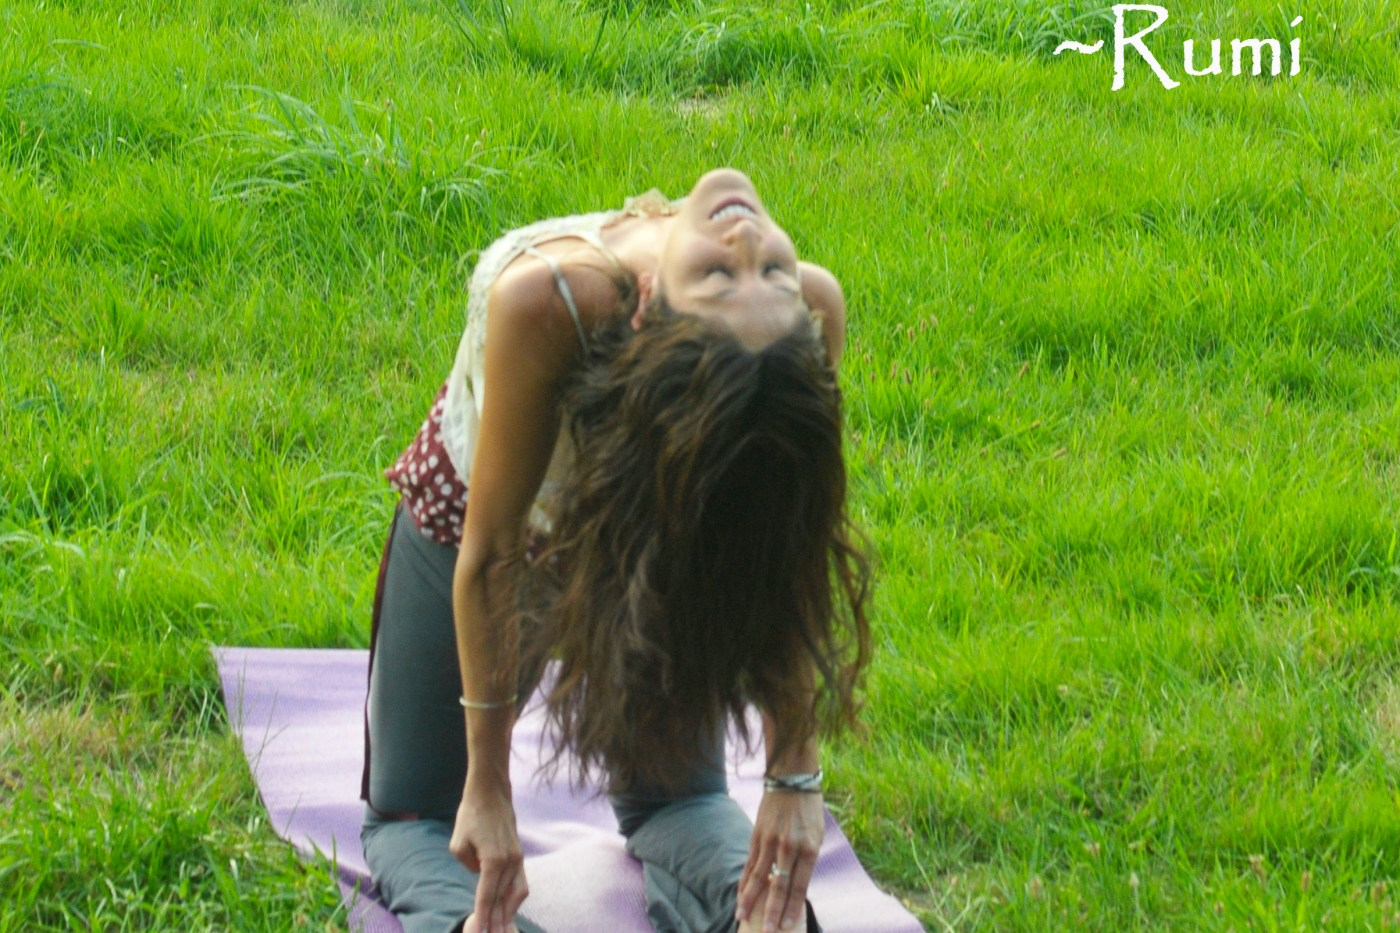 Surrender - Providence Life Coaching and Reiki Counseling -Surrender-Rumi- woman Yoga Grass